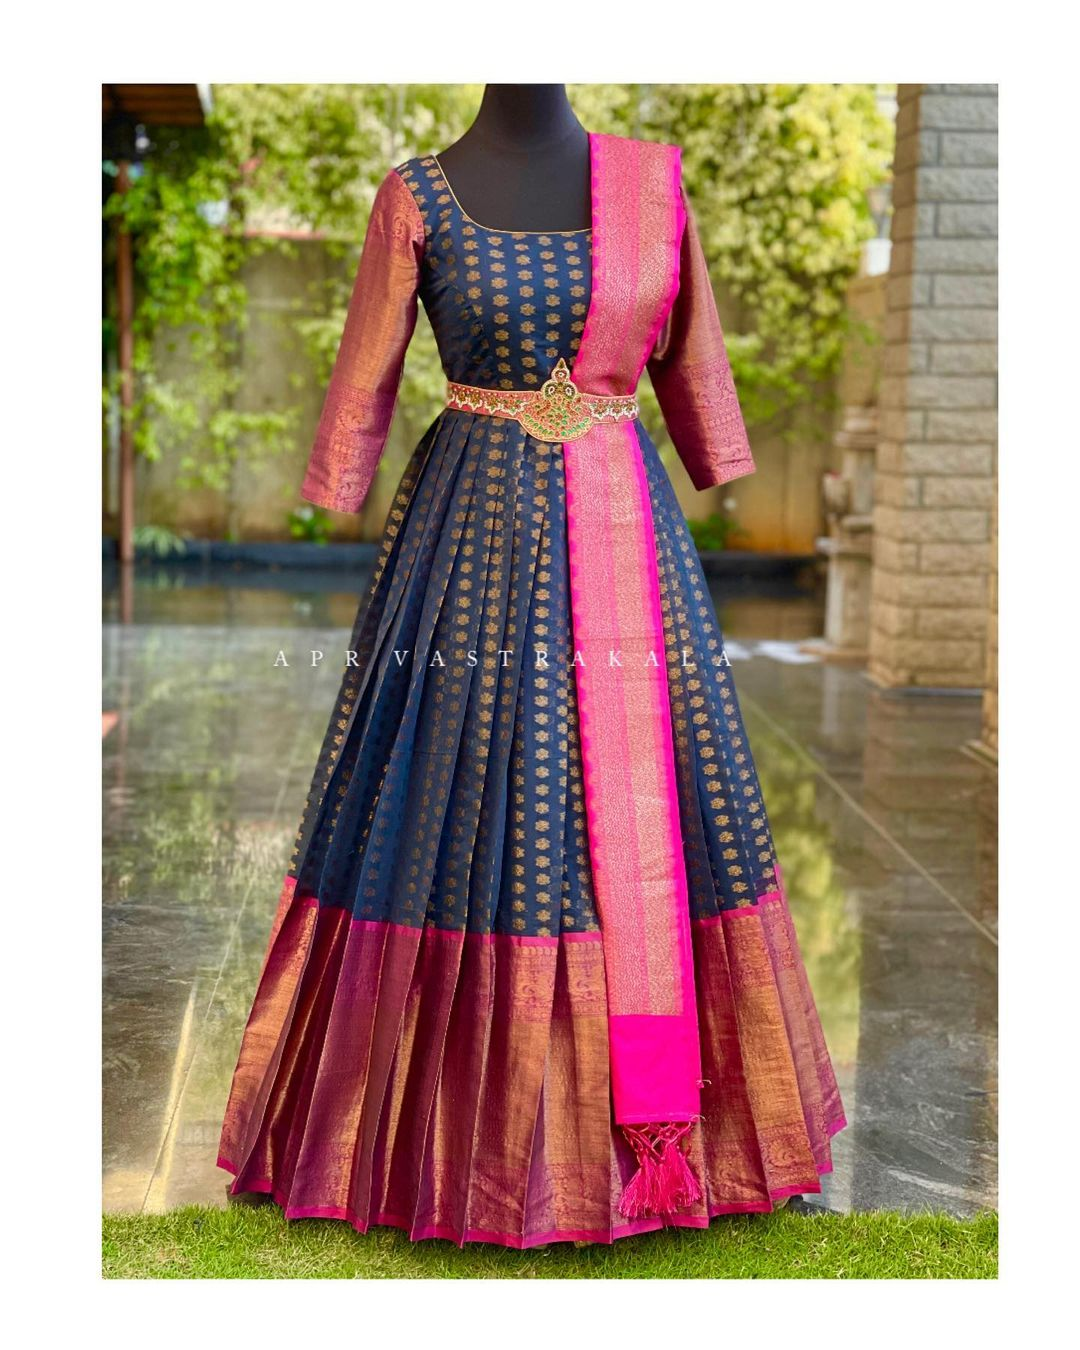 Gorgeous peacock blue and pink color combination pattu long frock with pattu dupatta and hand embroidery waist belt.    2021-03-12